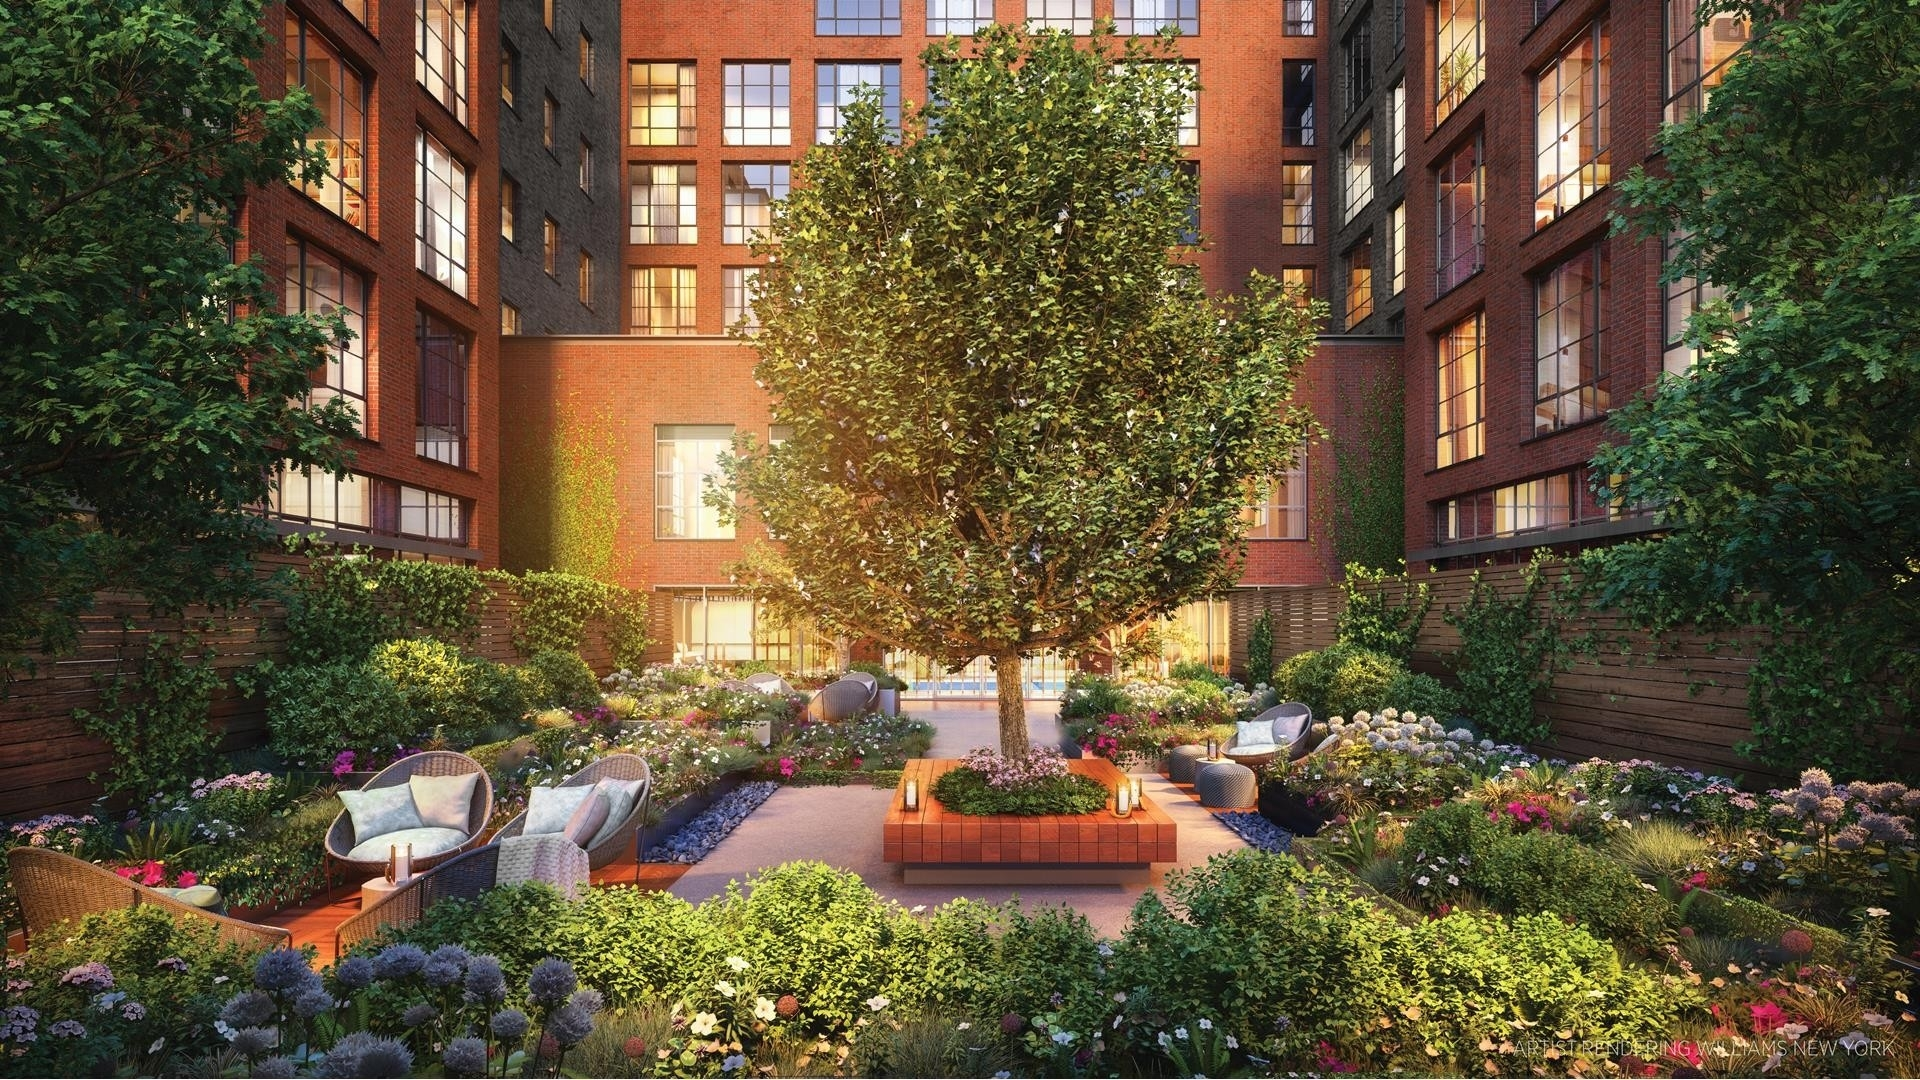 16. Condominiums for Sale at Steiner East Village, 438 E 12TH ST , 3Q East Village, New York, NY 10009